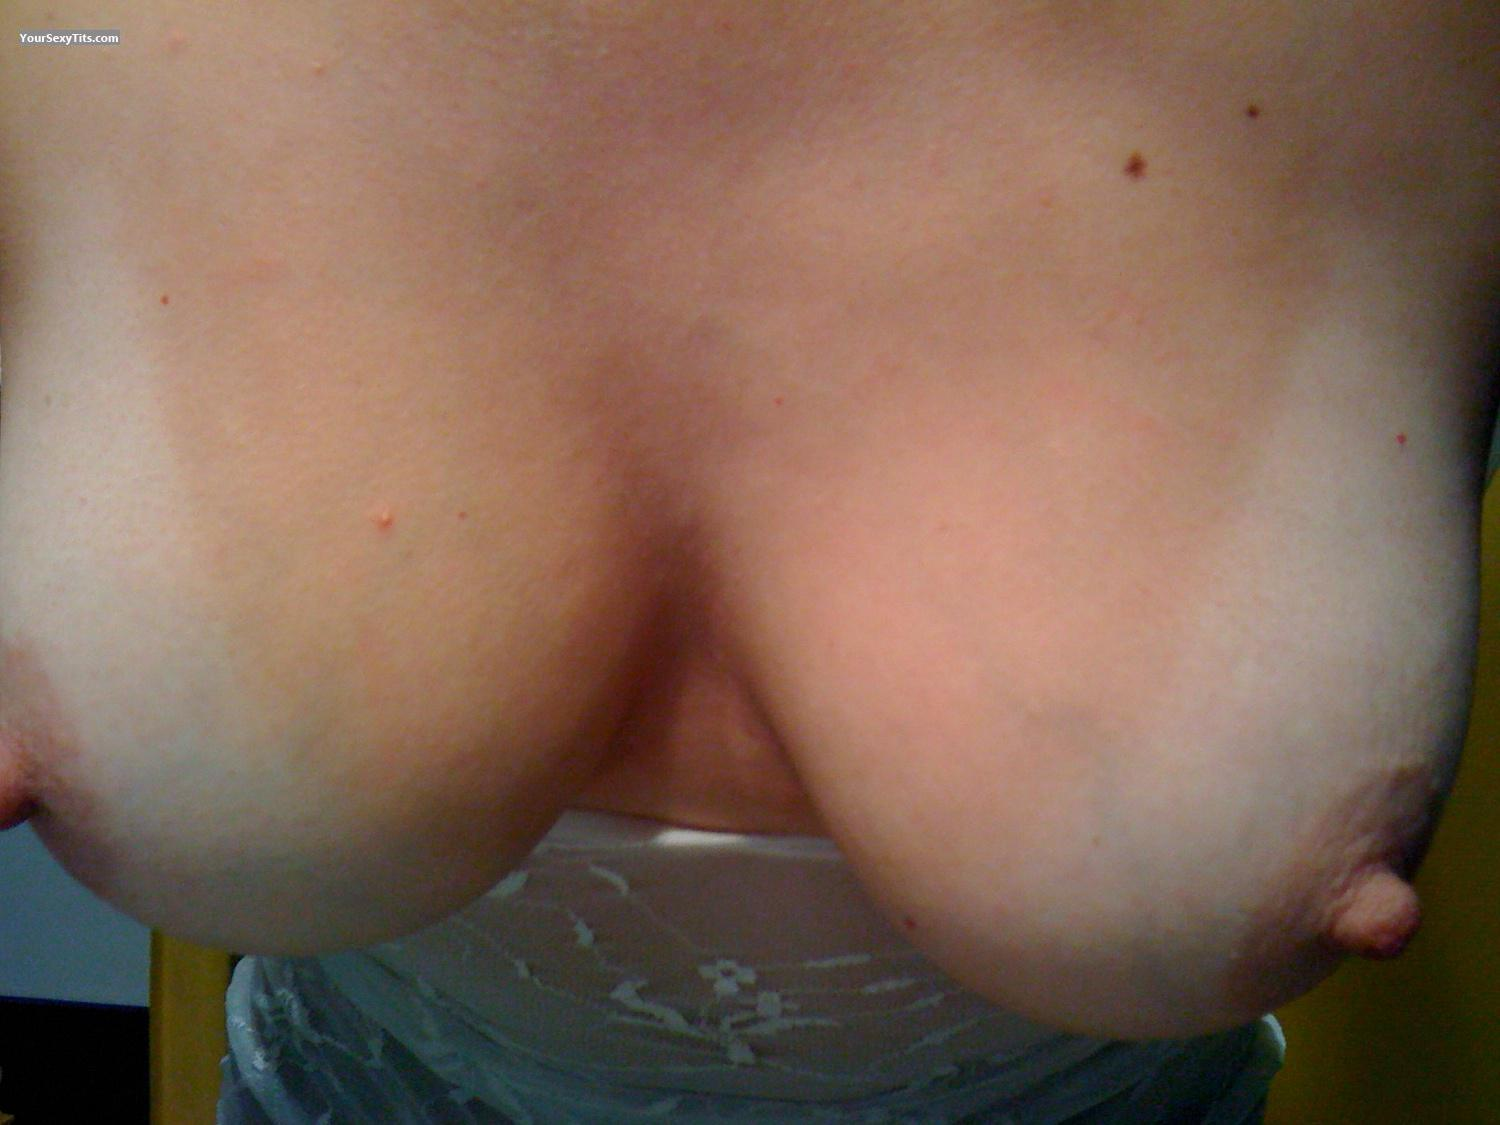 Tit Flash: My Medium Tits By IPhone (Selfie) - LittleBabs from France